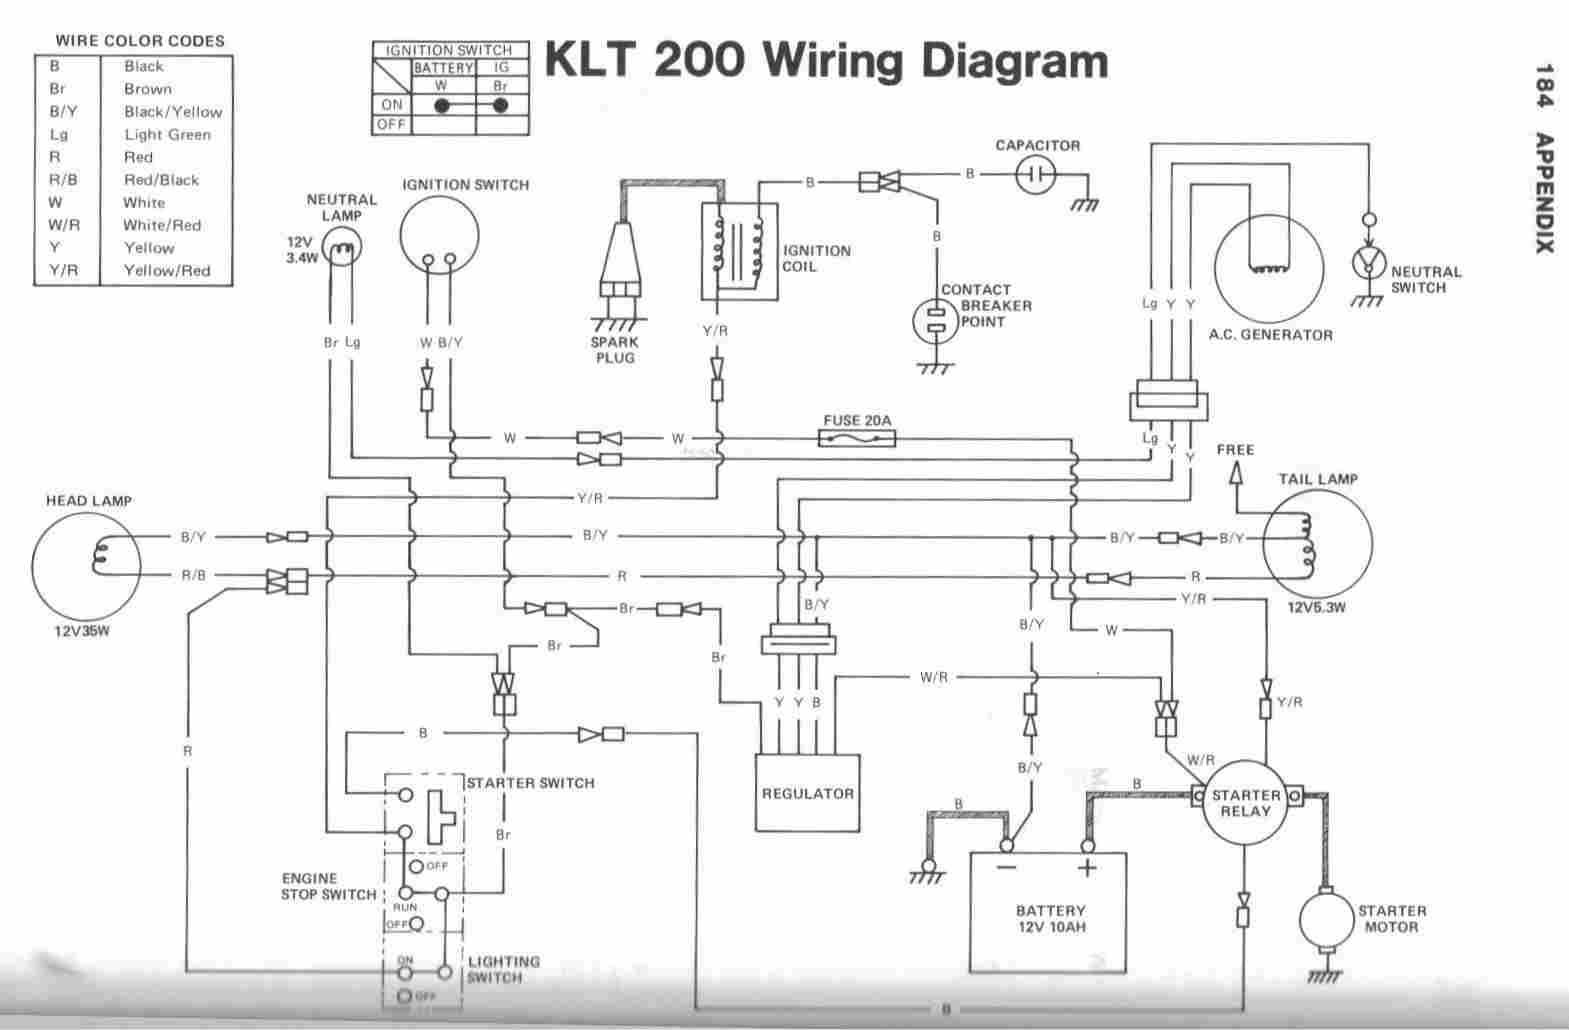 Residential Electrical Wiring Diagrams Pdf Easy Routing border=